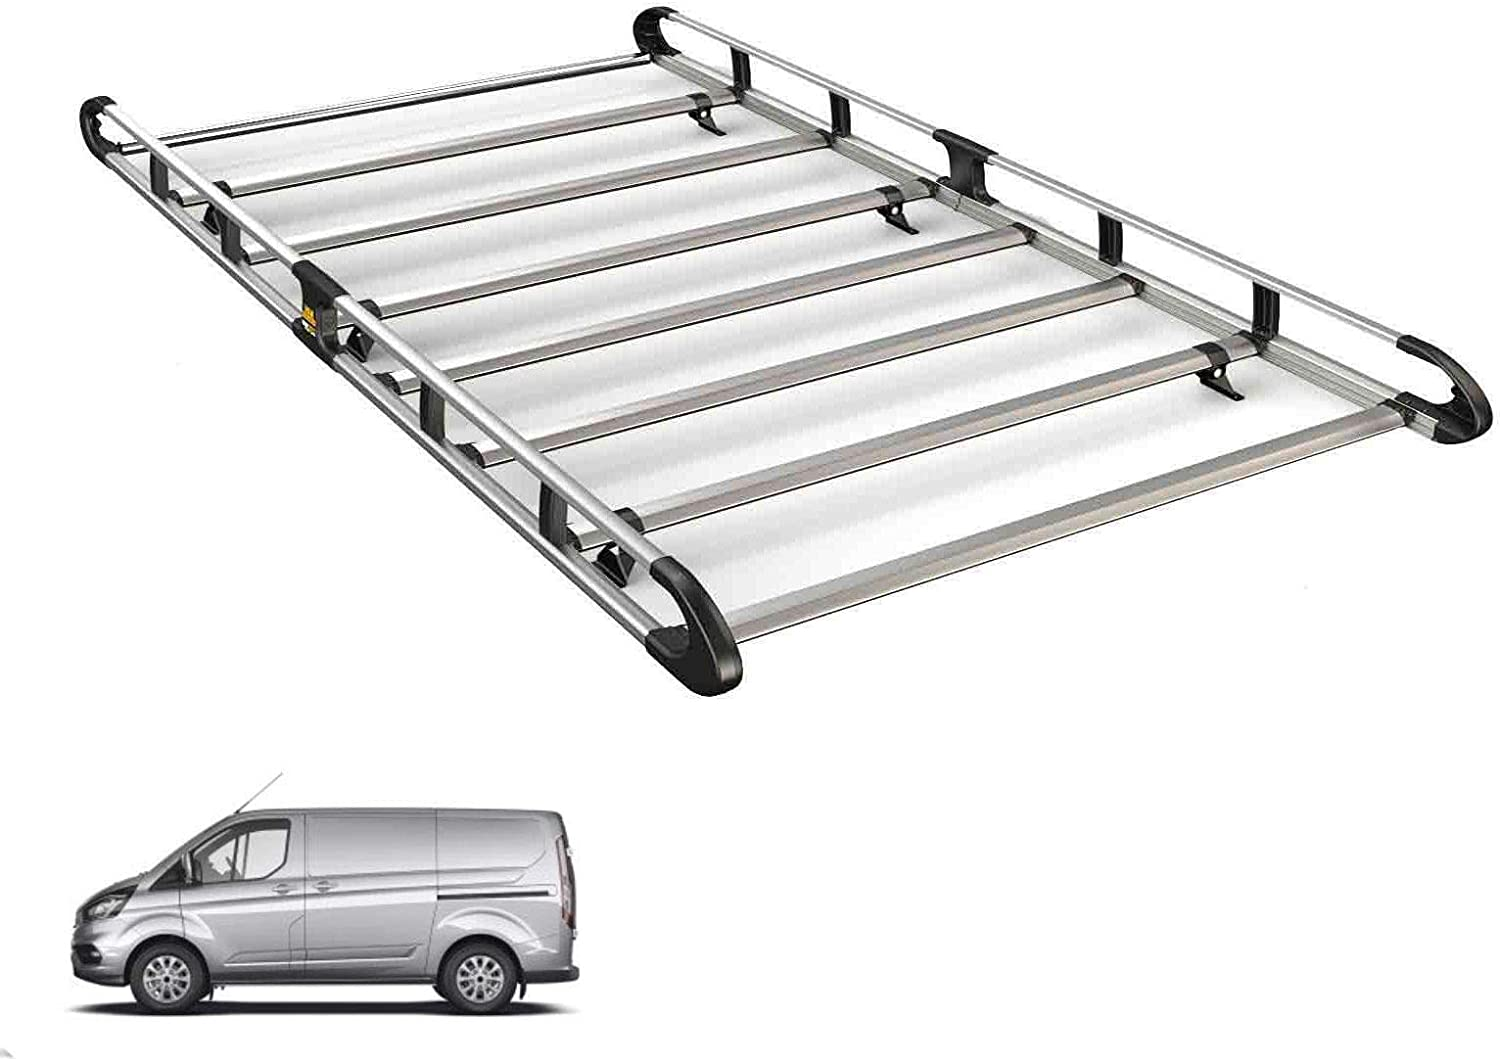 Low Roof Van Guard ULTI Bar 3 Roof Bars and Rear Ladder Roller Kit for Ford Transit MK6//7 00-14